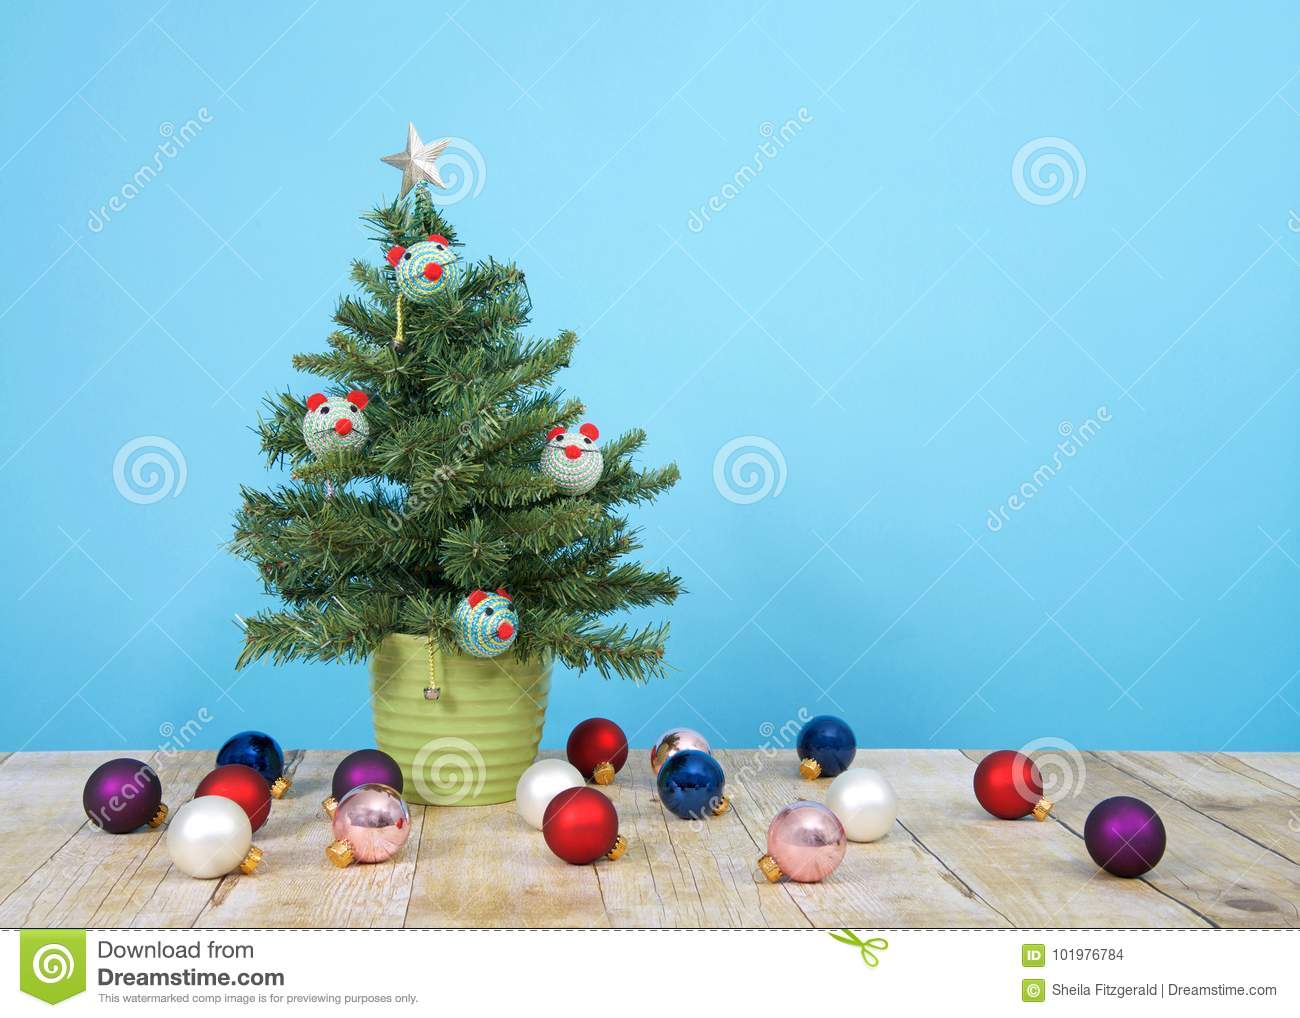 miniature christmas tree with cat toys and fallen ornaments - Miniature Christmas Tree Ornaments